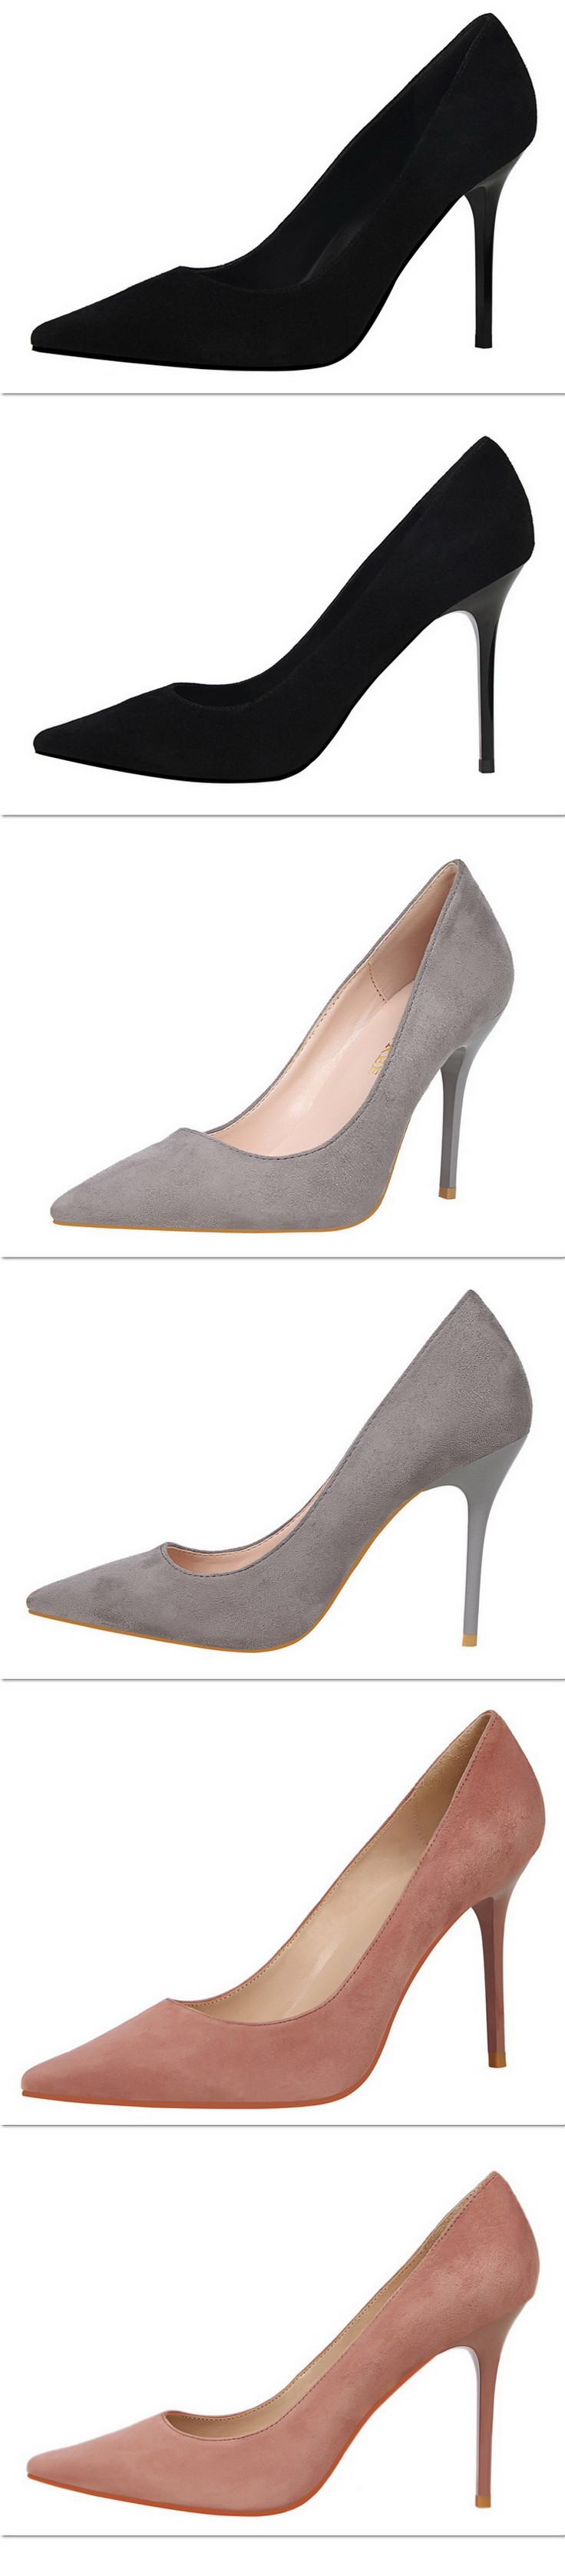 New fashion pointed toe women pumps shoes thin heels flock shallow concise Sexy women High heels shoes wedding pumps shoes